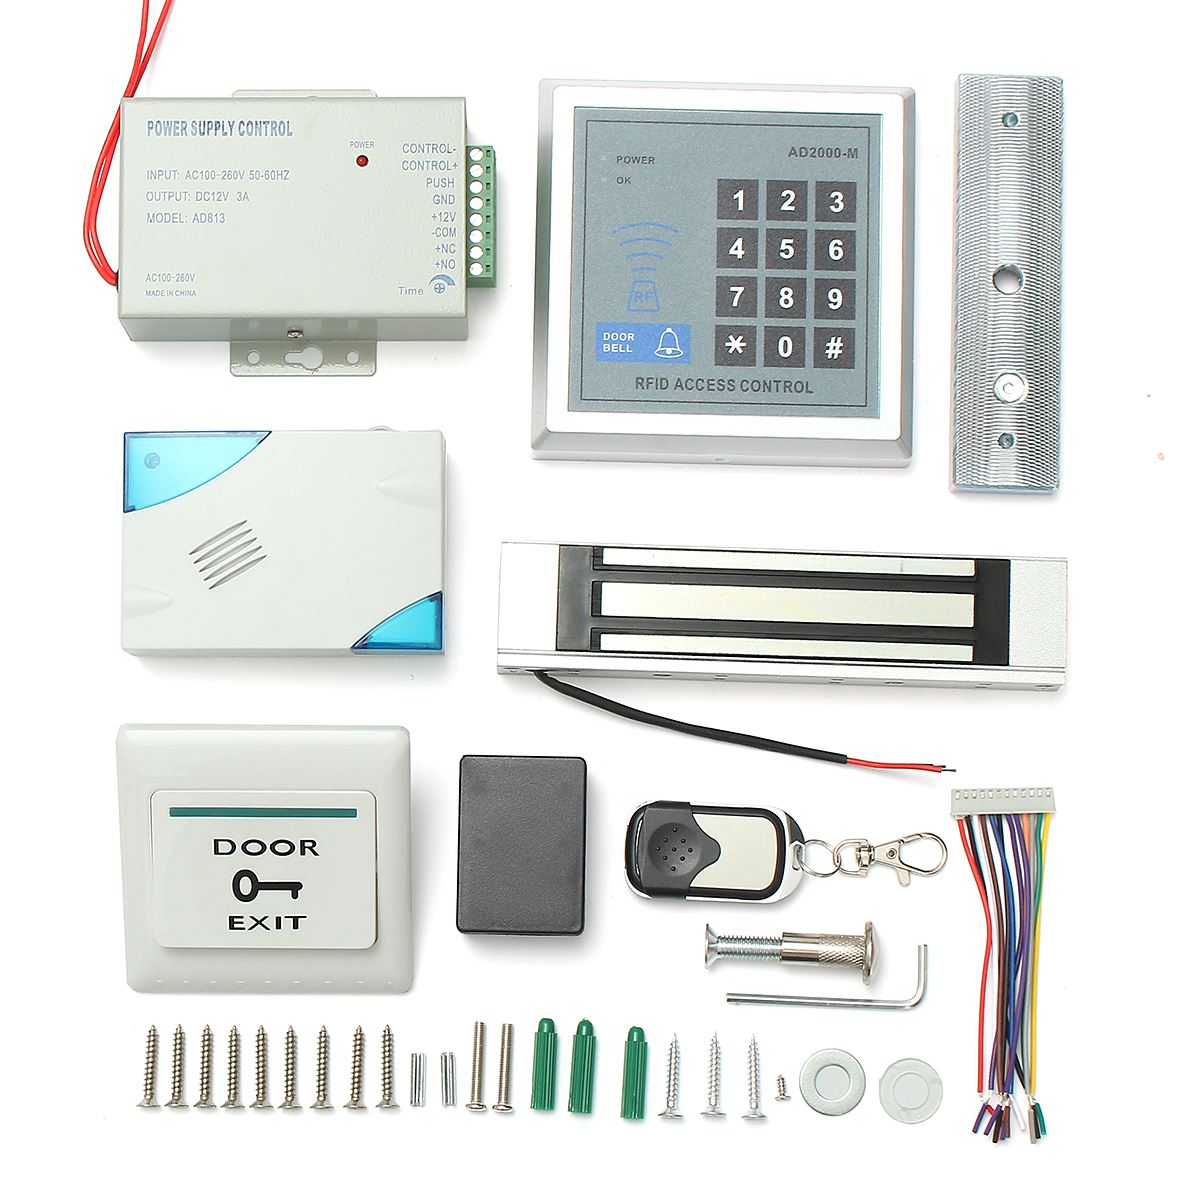 NEW 125KHz RFID ID Card Keypad Doorbell Door Lock Security Access Control System Kit Home Security Safety diysecur magnetic lock door lock 125khz rfid password keypad access control system security kit for home office